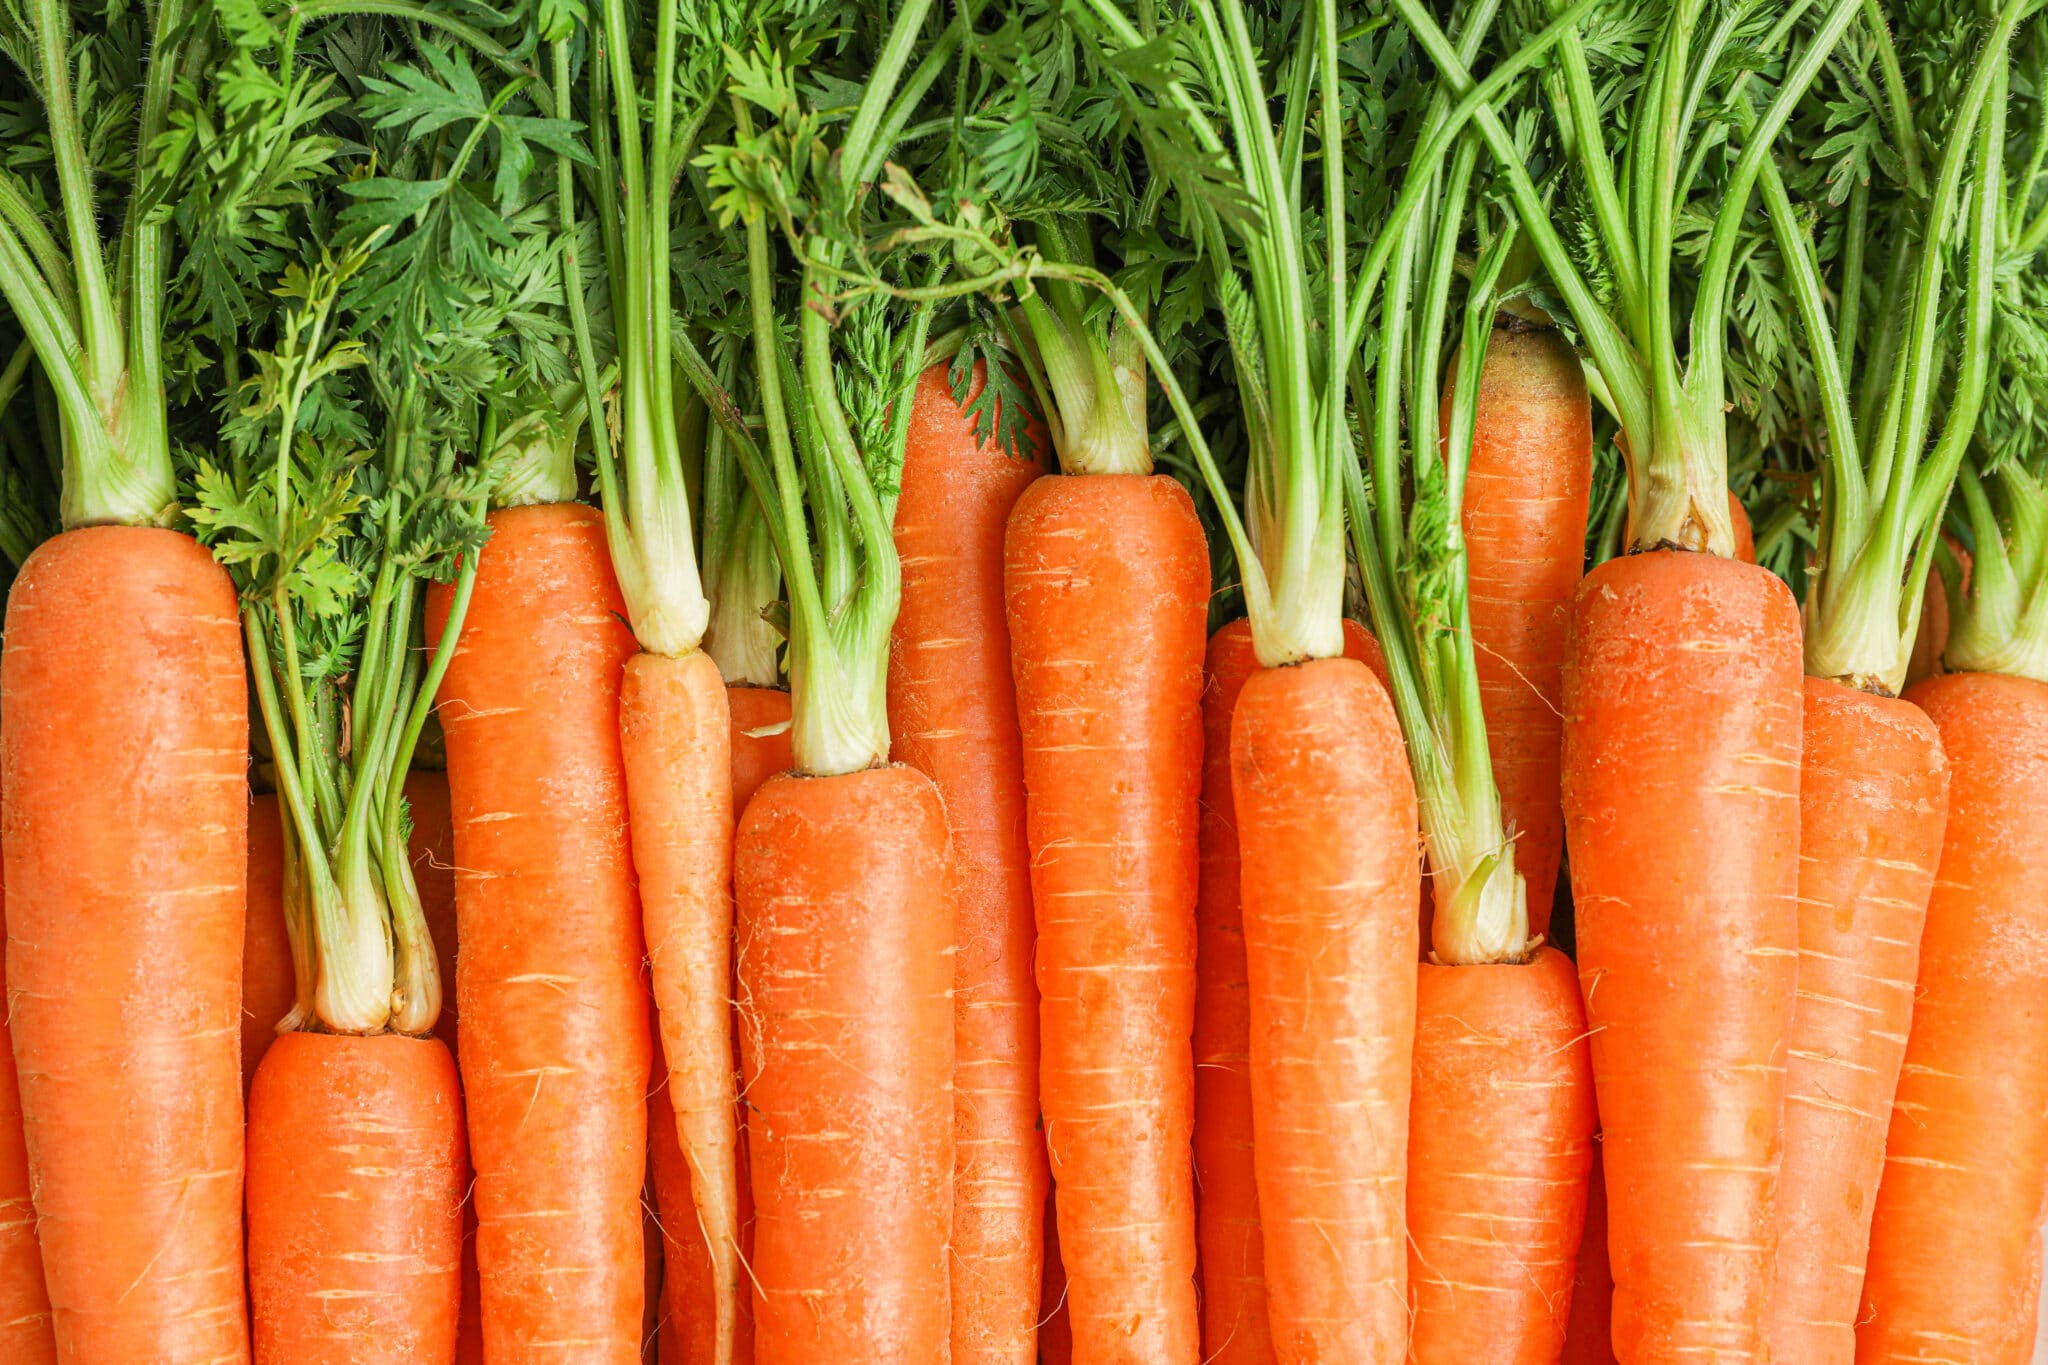 Ripe freshly harvested carrots with bright green tops laid together in a piled row.